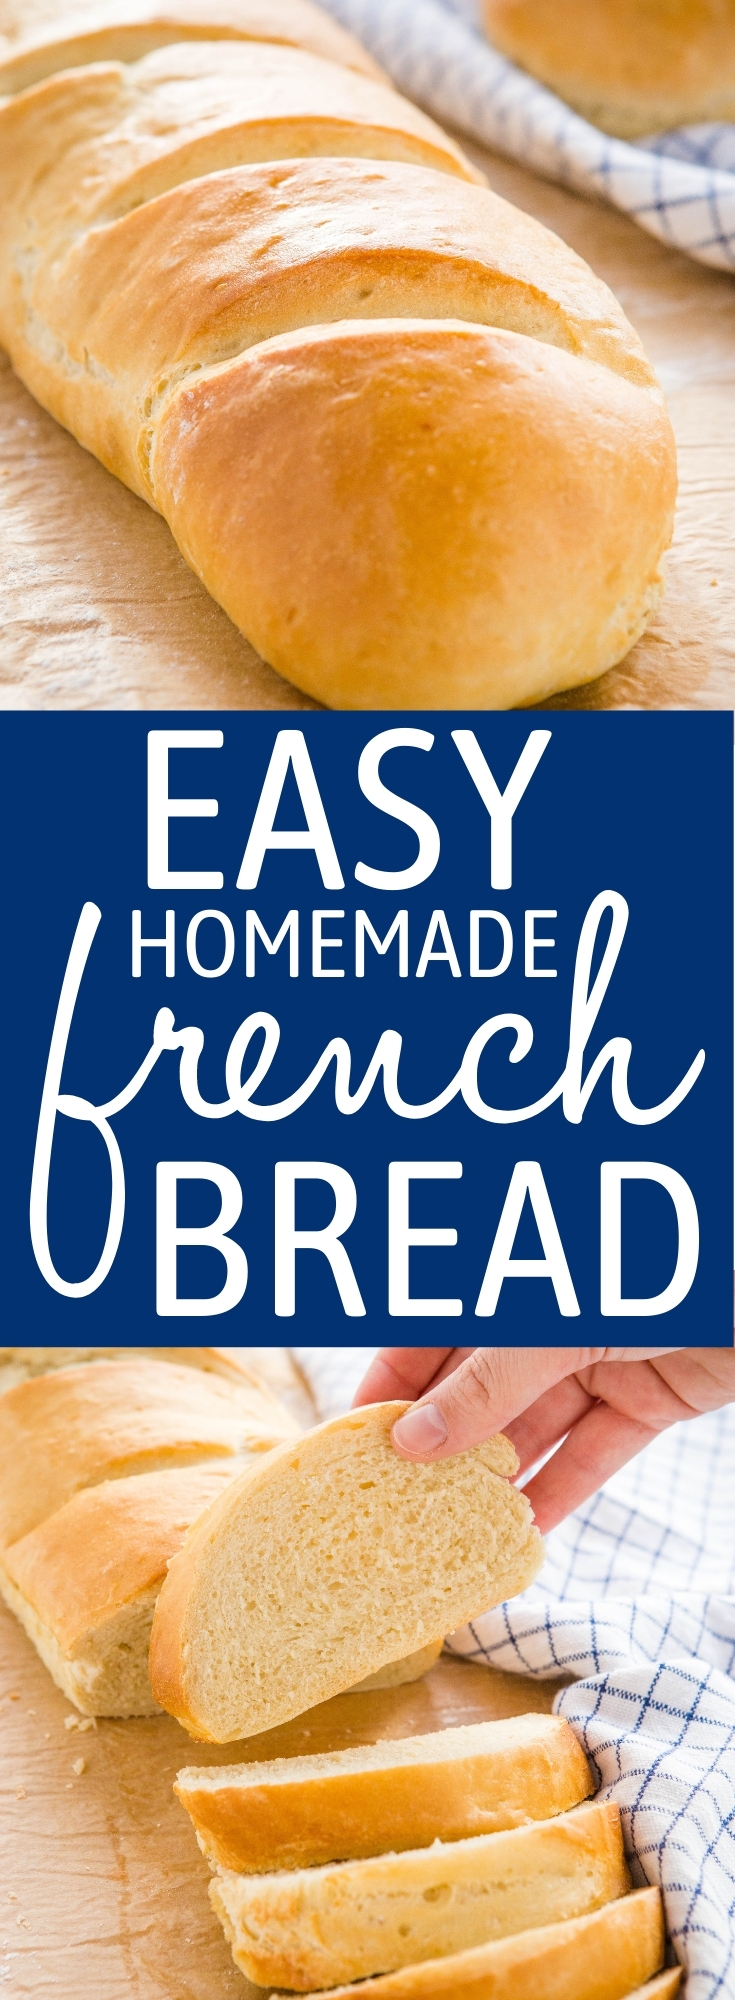 This Easy Homemade French Bread is the perfect bakery-style bread with a crispy crust and a chewy centre  - made with only 5 simple ingredients! Recipe from thebusybaker.ca! #frenchbread #easybread #homemadebread #whitebread #homebaking #baking #bakerystyle #homesteading via @busybakerblog